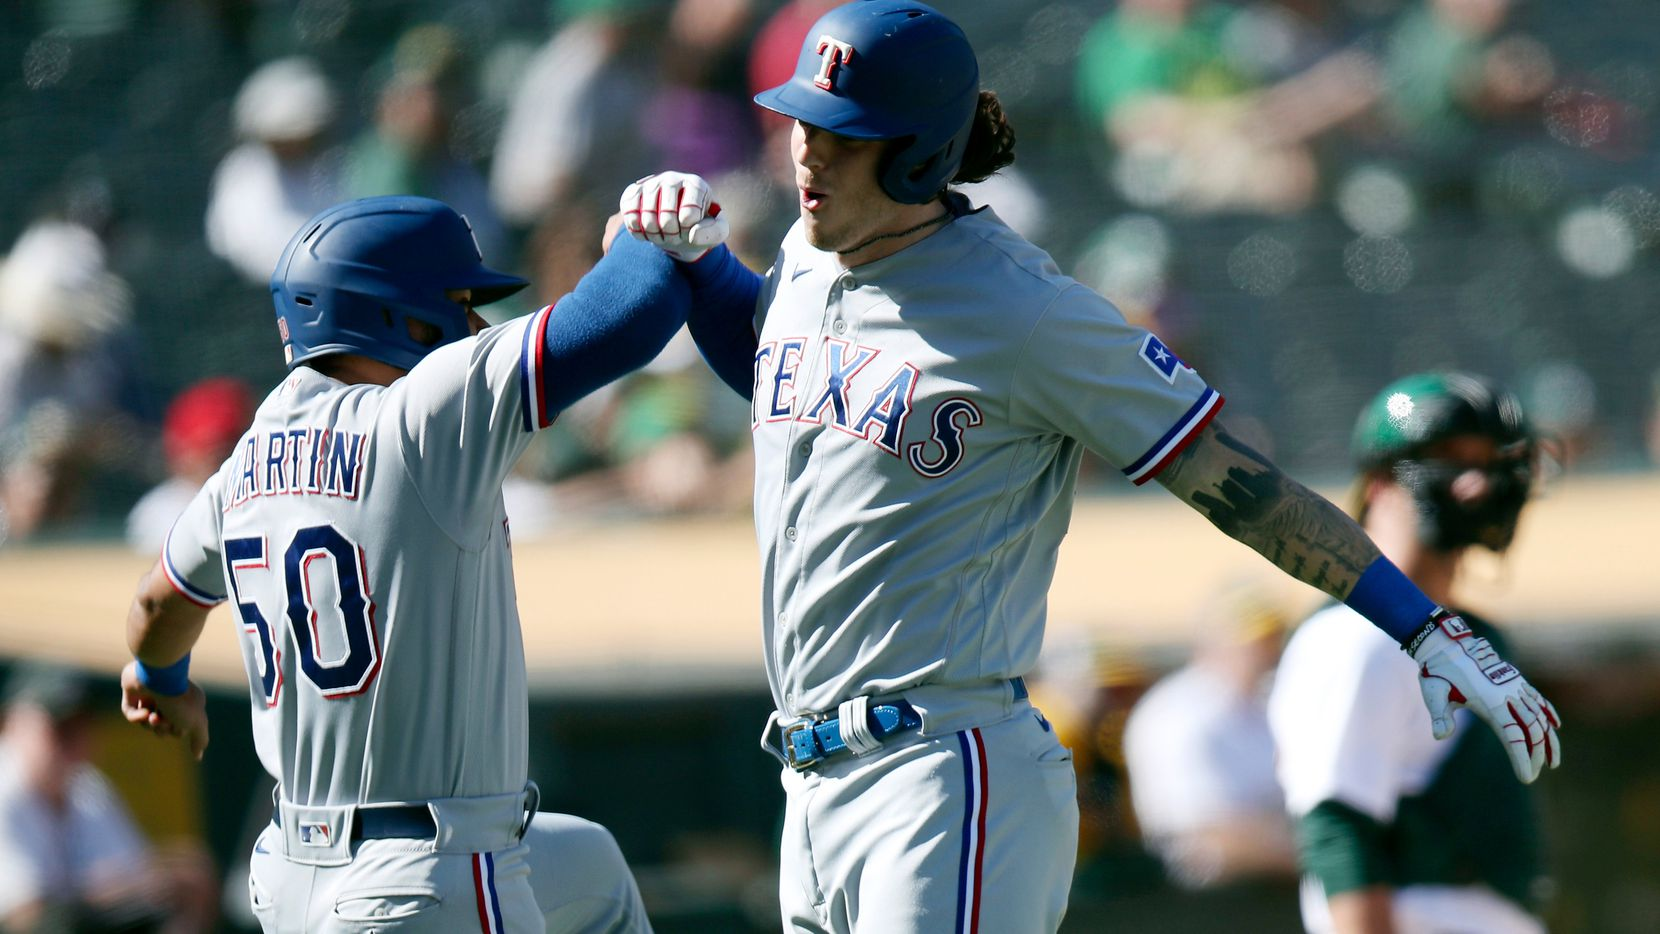 Texas Rangers' Jason Martin (50) congratulates Jonah Heim (28) after he hit a two-run home run in the eighth inning in a baseball game against the Oakland Athletics, Saturday, Sept. 11, 2021, in Oakland. (AP Photo/Scot Tucker)